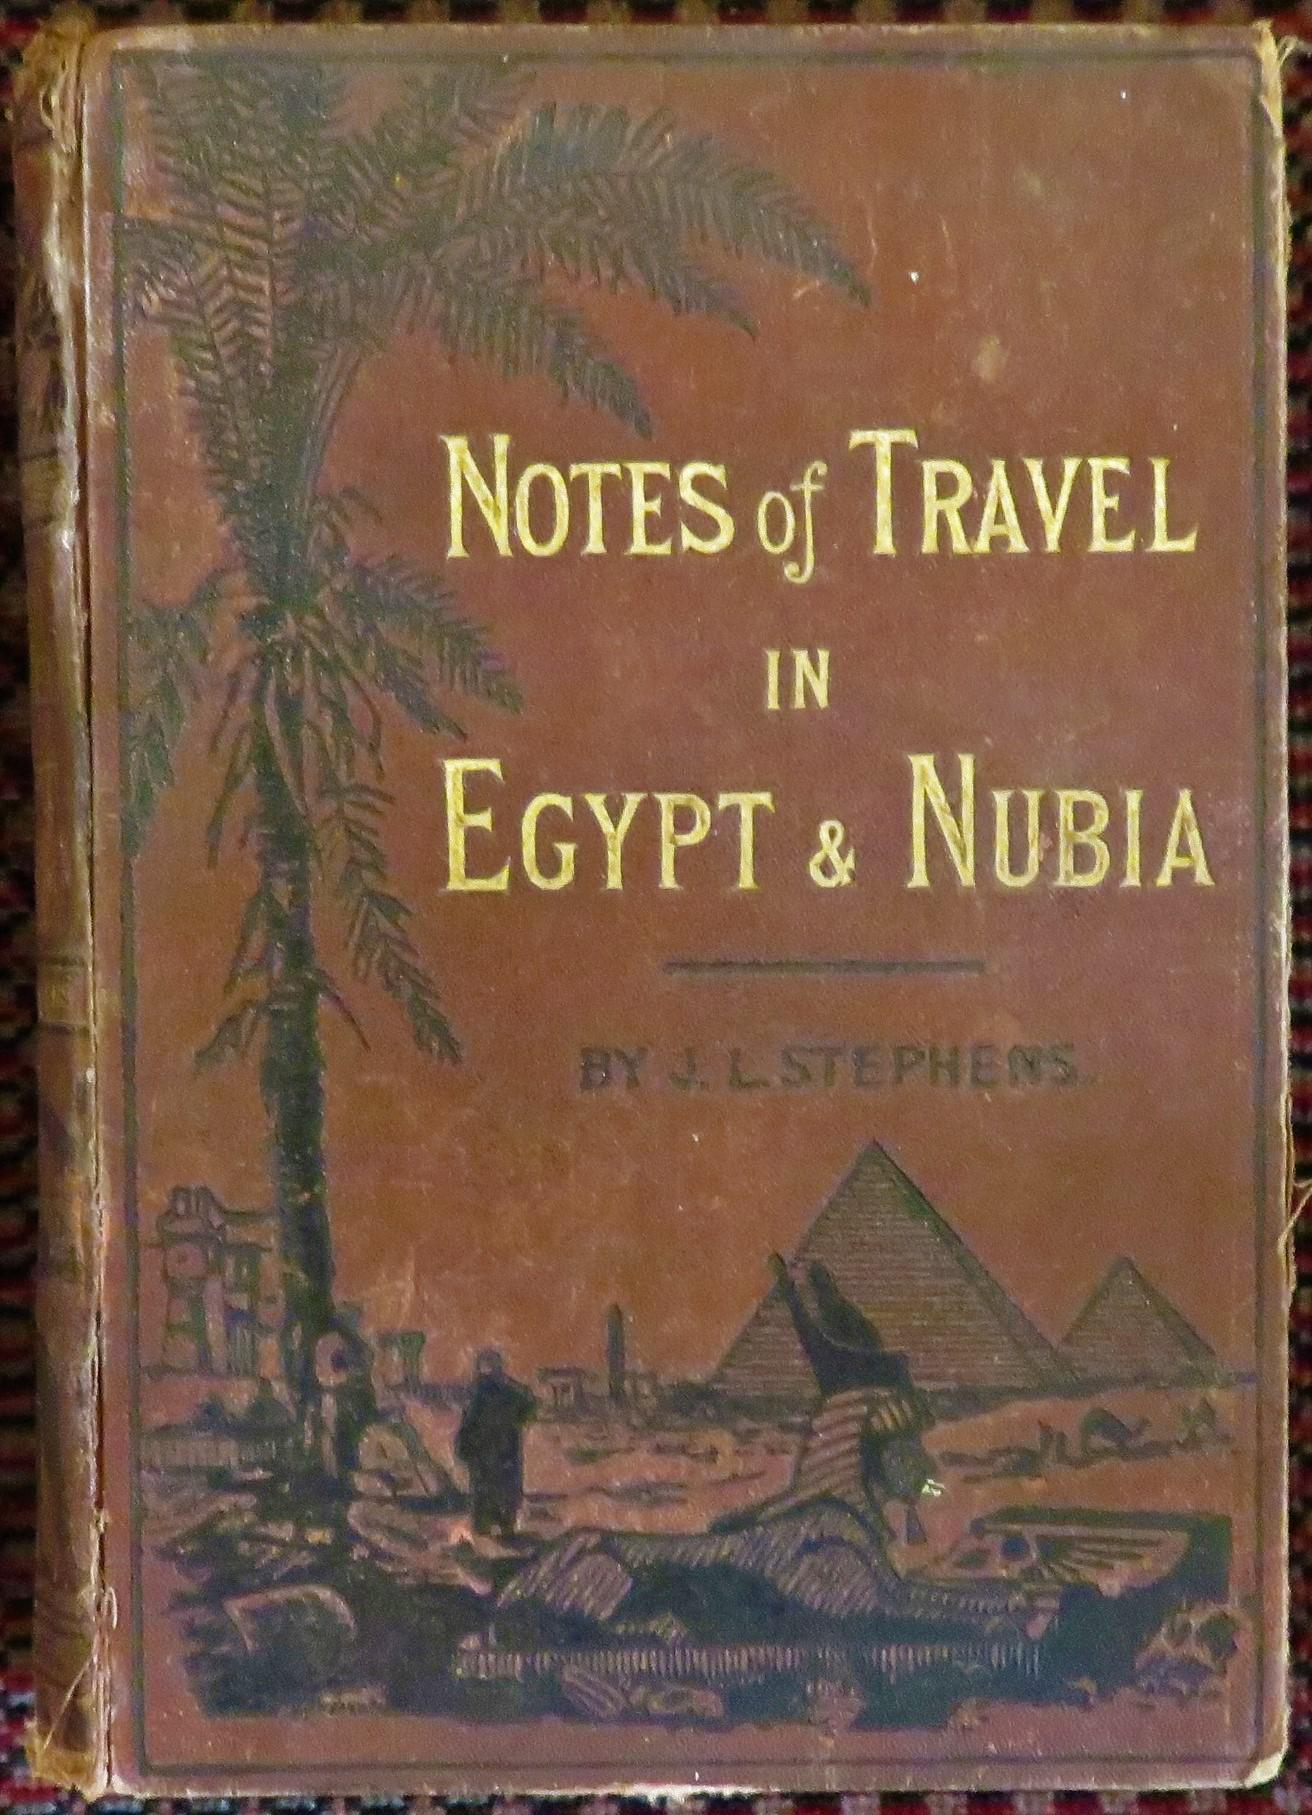 Notes of Travel in Egypt & Nubia